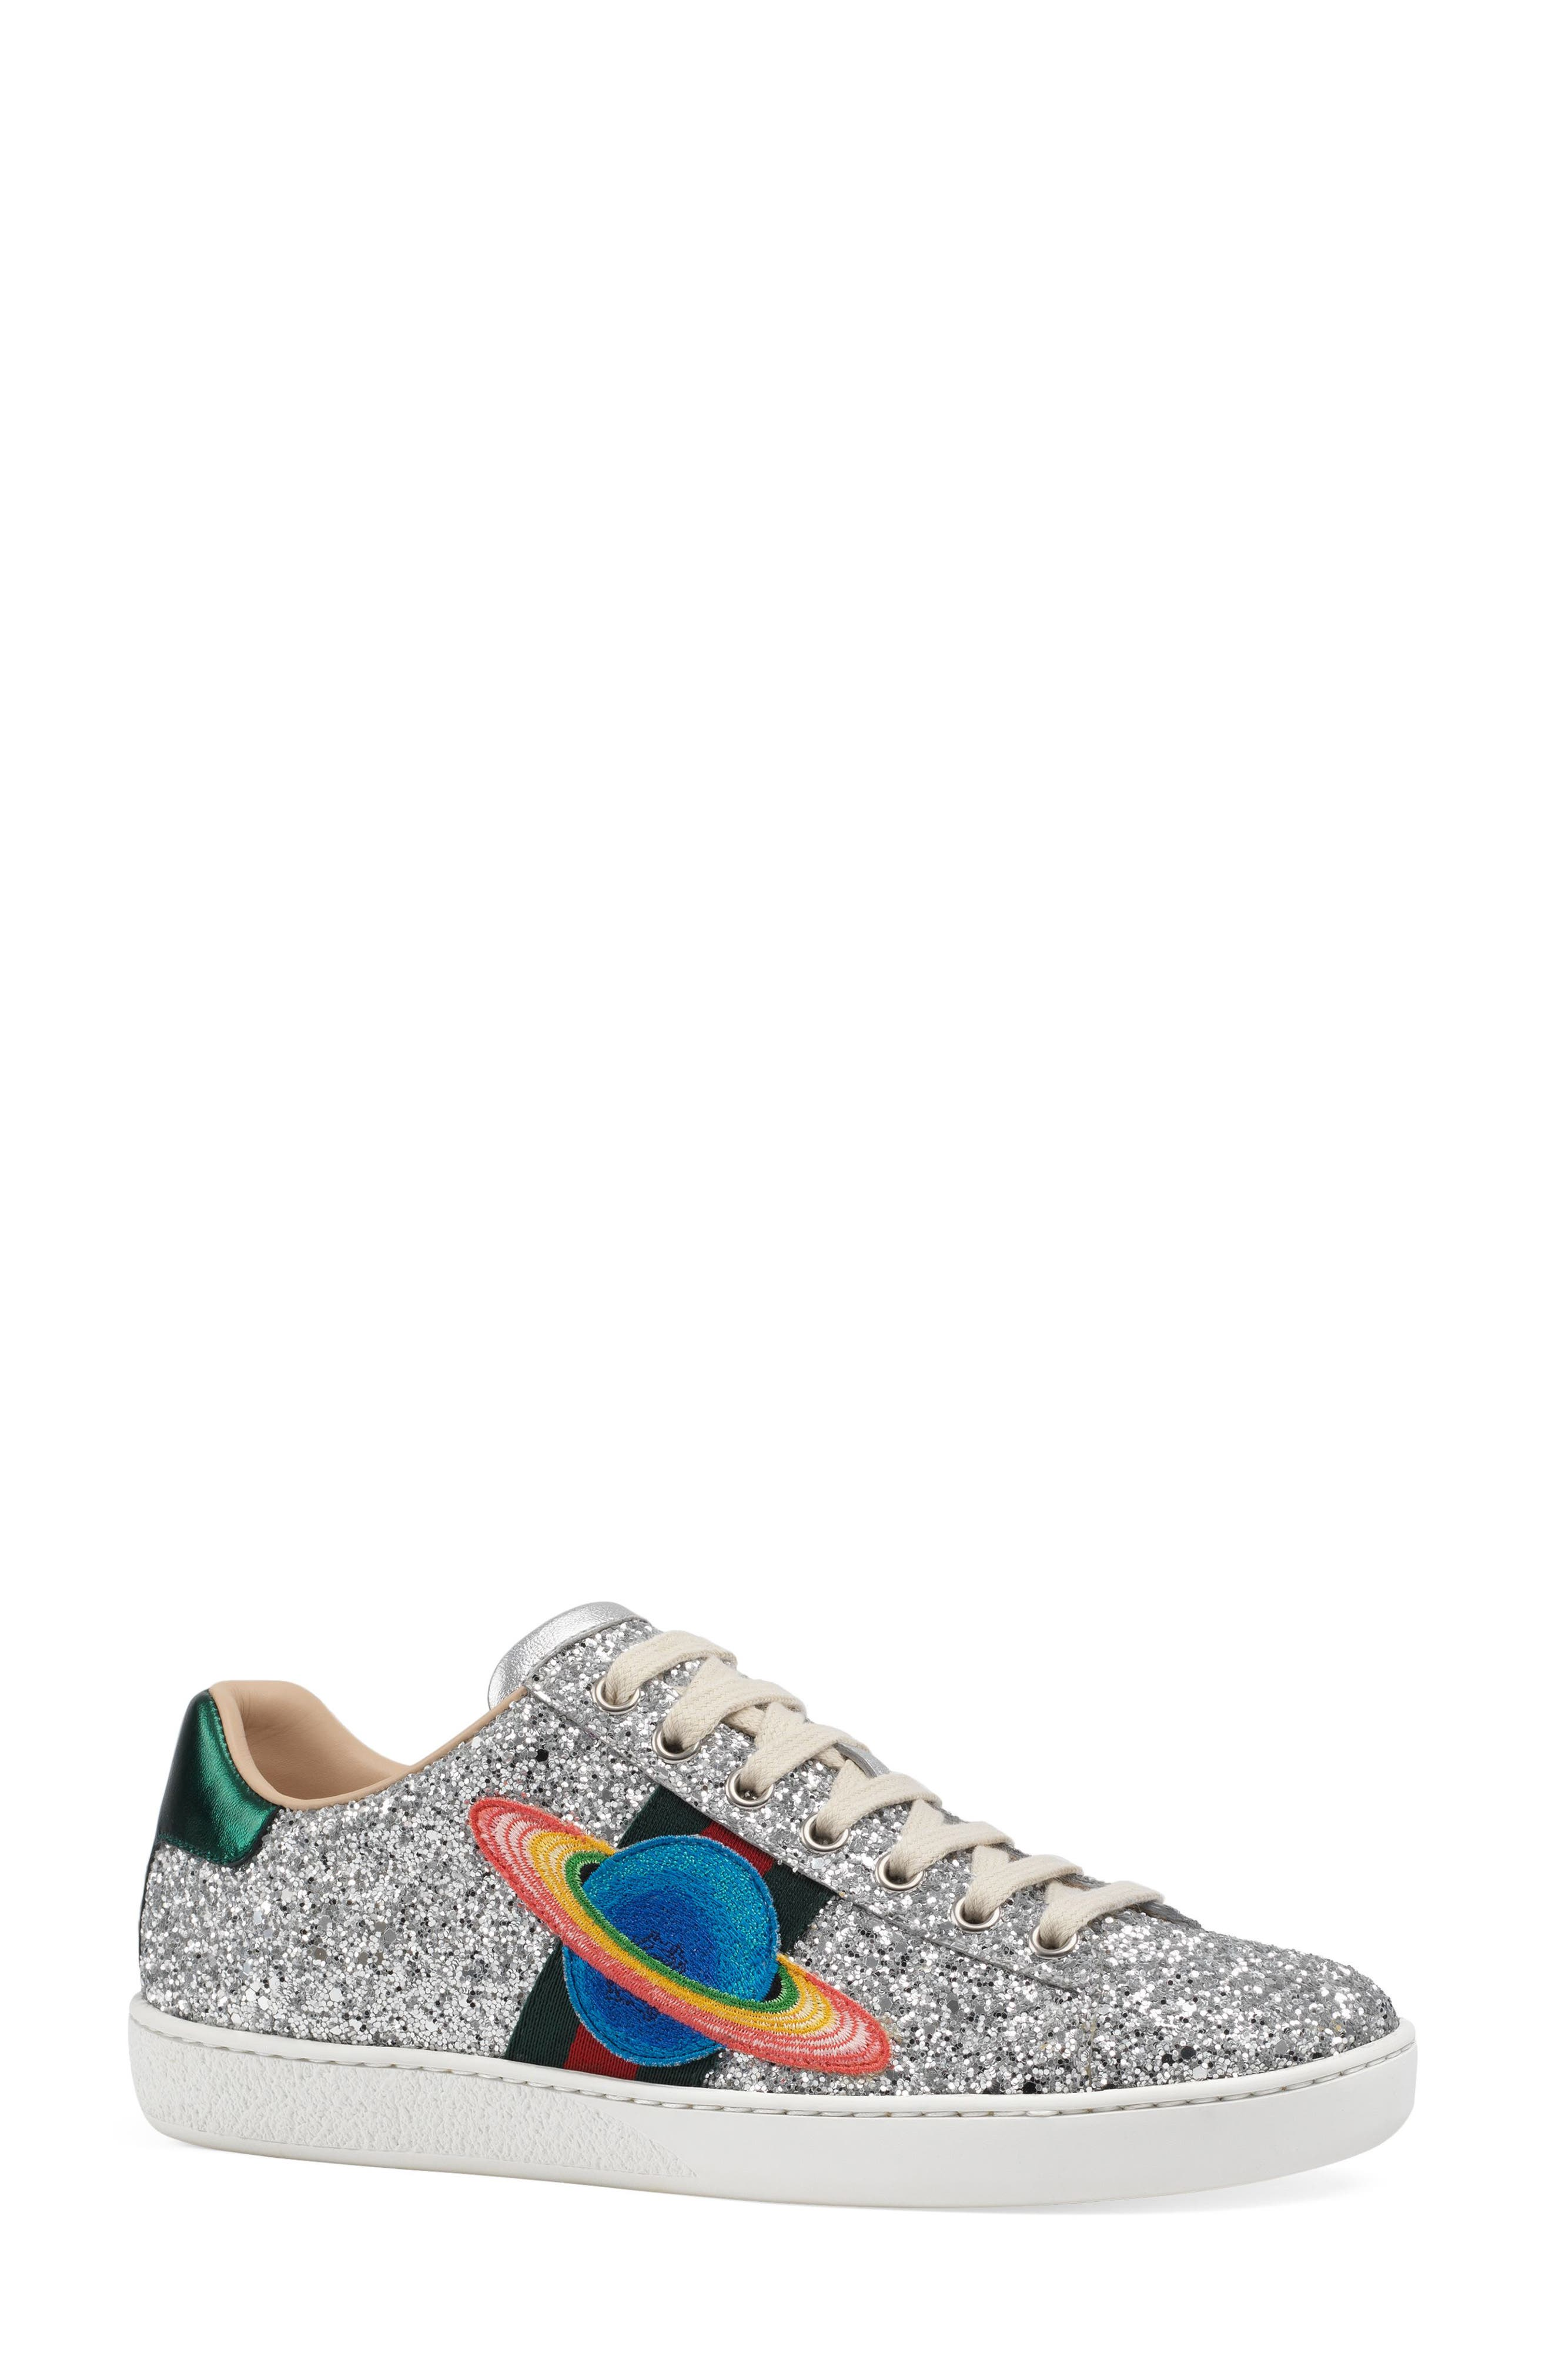 Alternate Image 1 Selected - Gucci 'New Ace' Low Top Sneaker (Women)